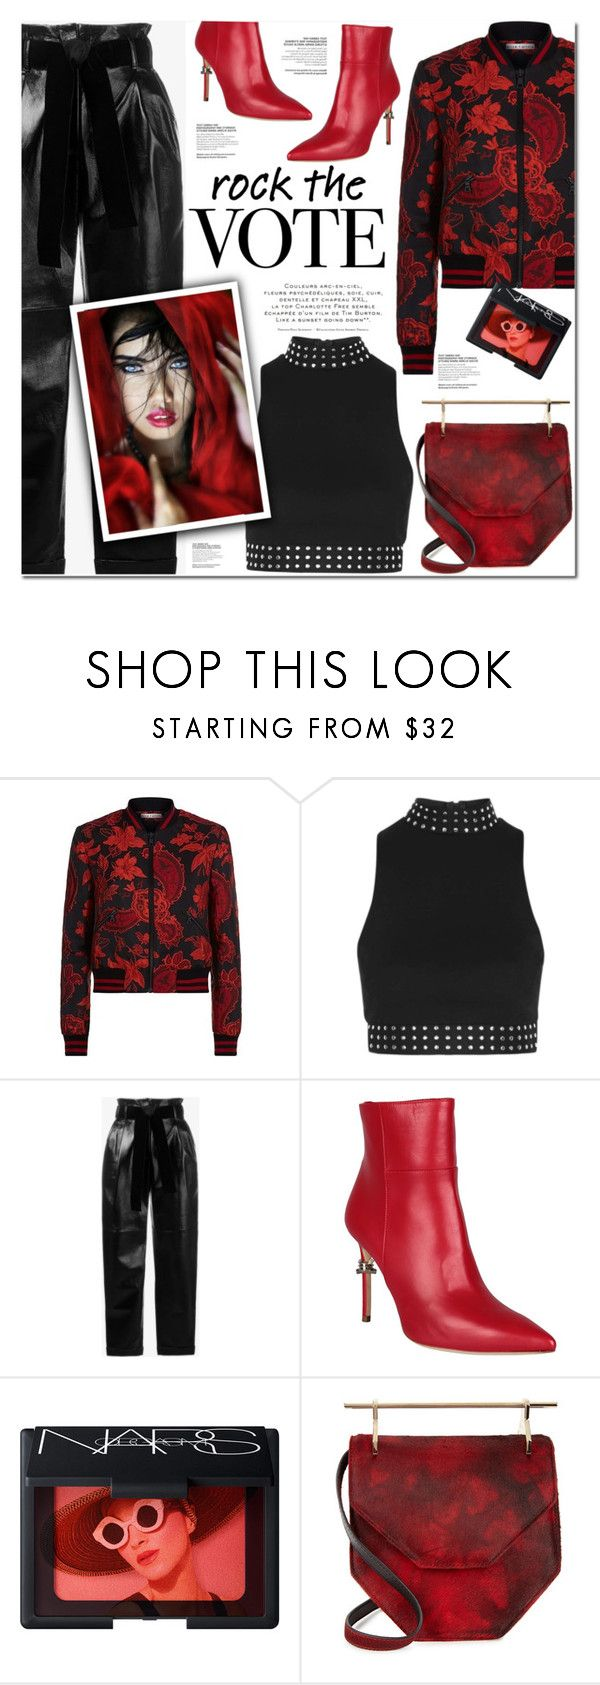 """ROCK THE VOTE"" by nanawidia ❤ liked on Polyvore featuring Alice + Olivia, Topshop, Philosophy di Lorenzo Serafini, Dsquared2, NARS Cosmetics, M2Malletier, polyvoreeditorial, polyvorecontest and rockthevote"